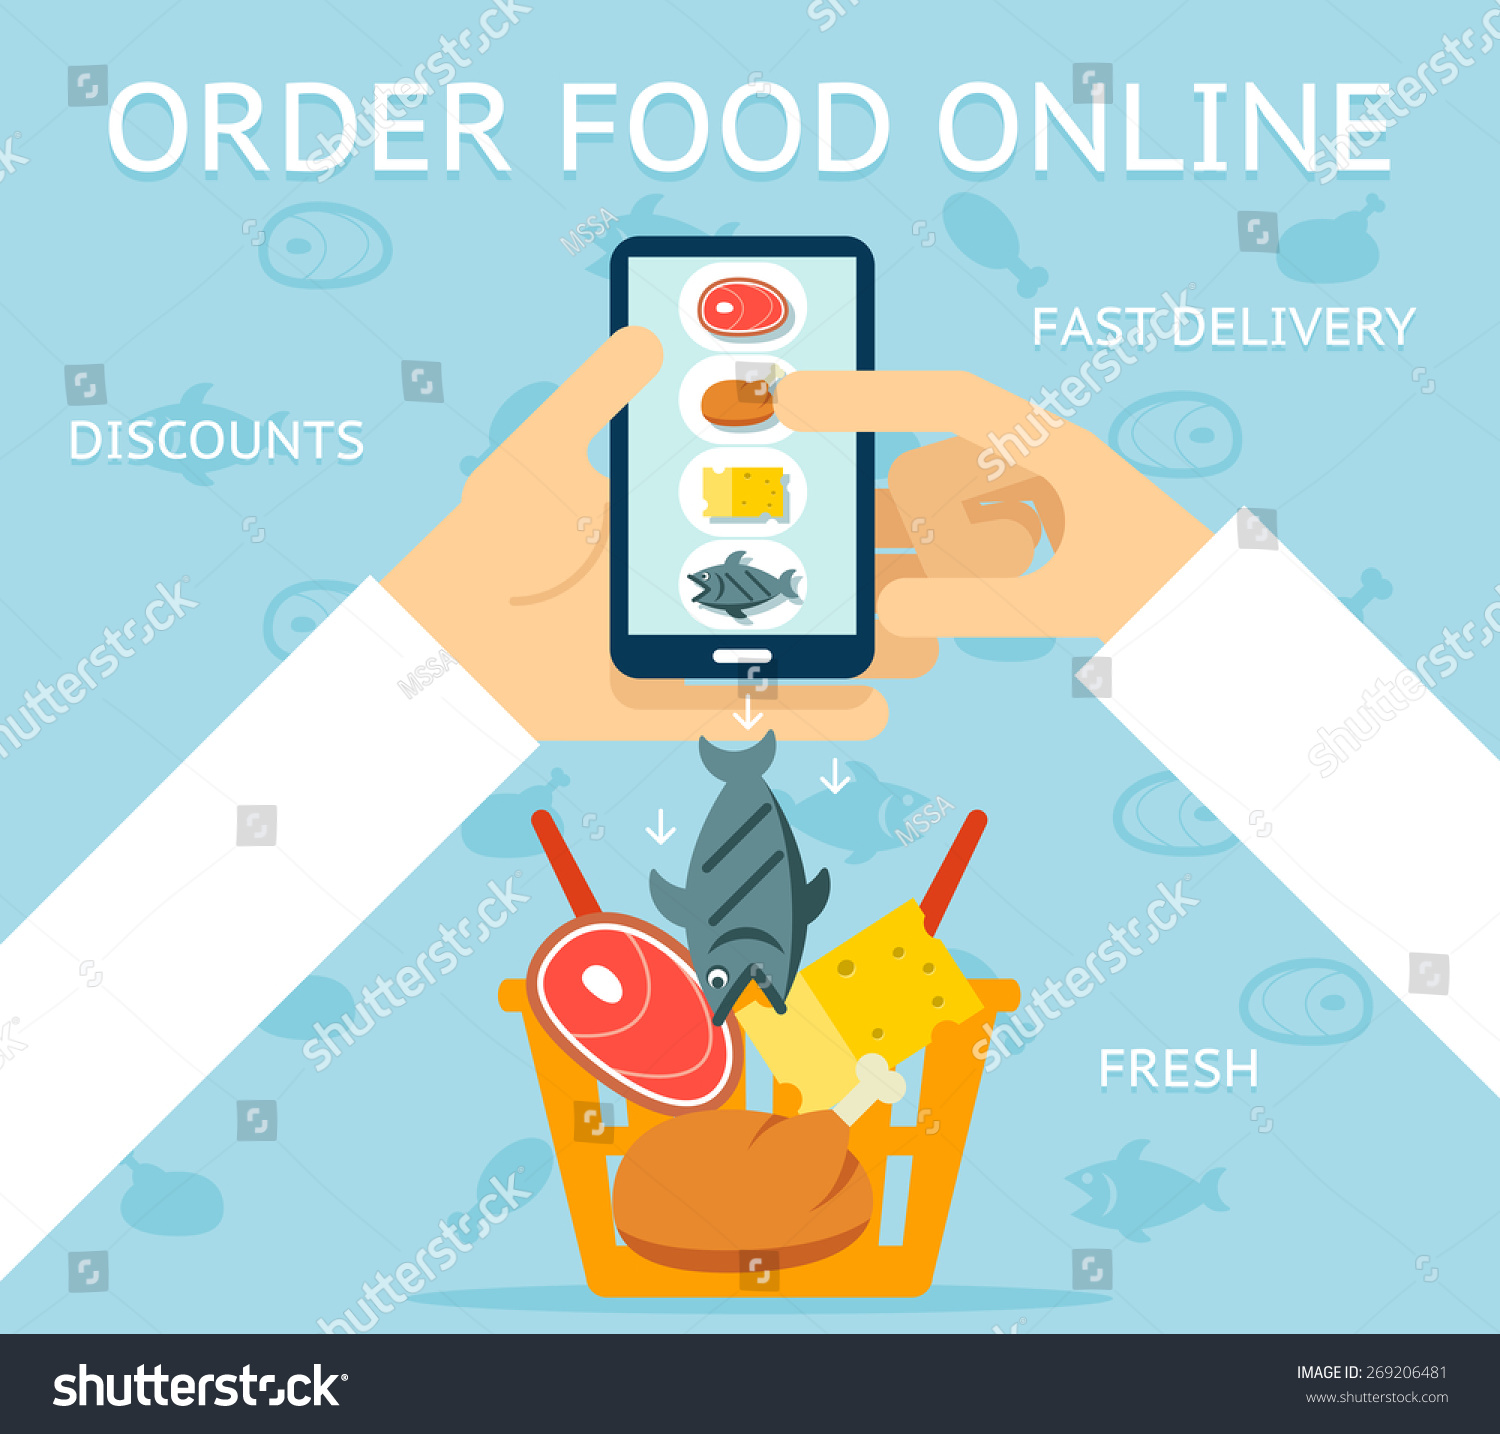 How to Start and Run a Food Delivery Business: Plan and Model